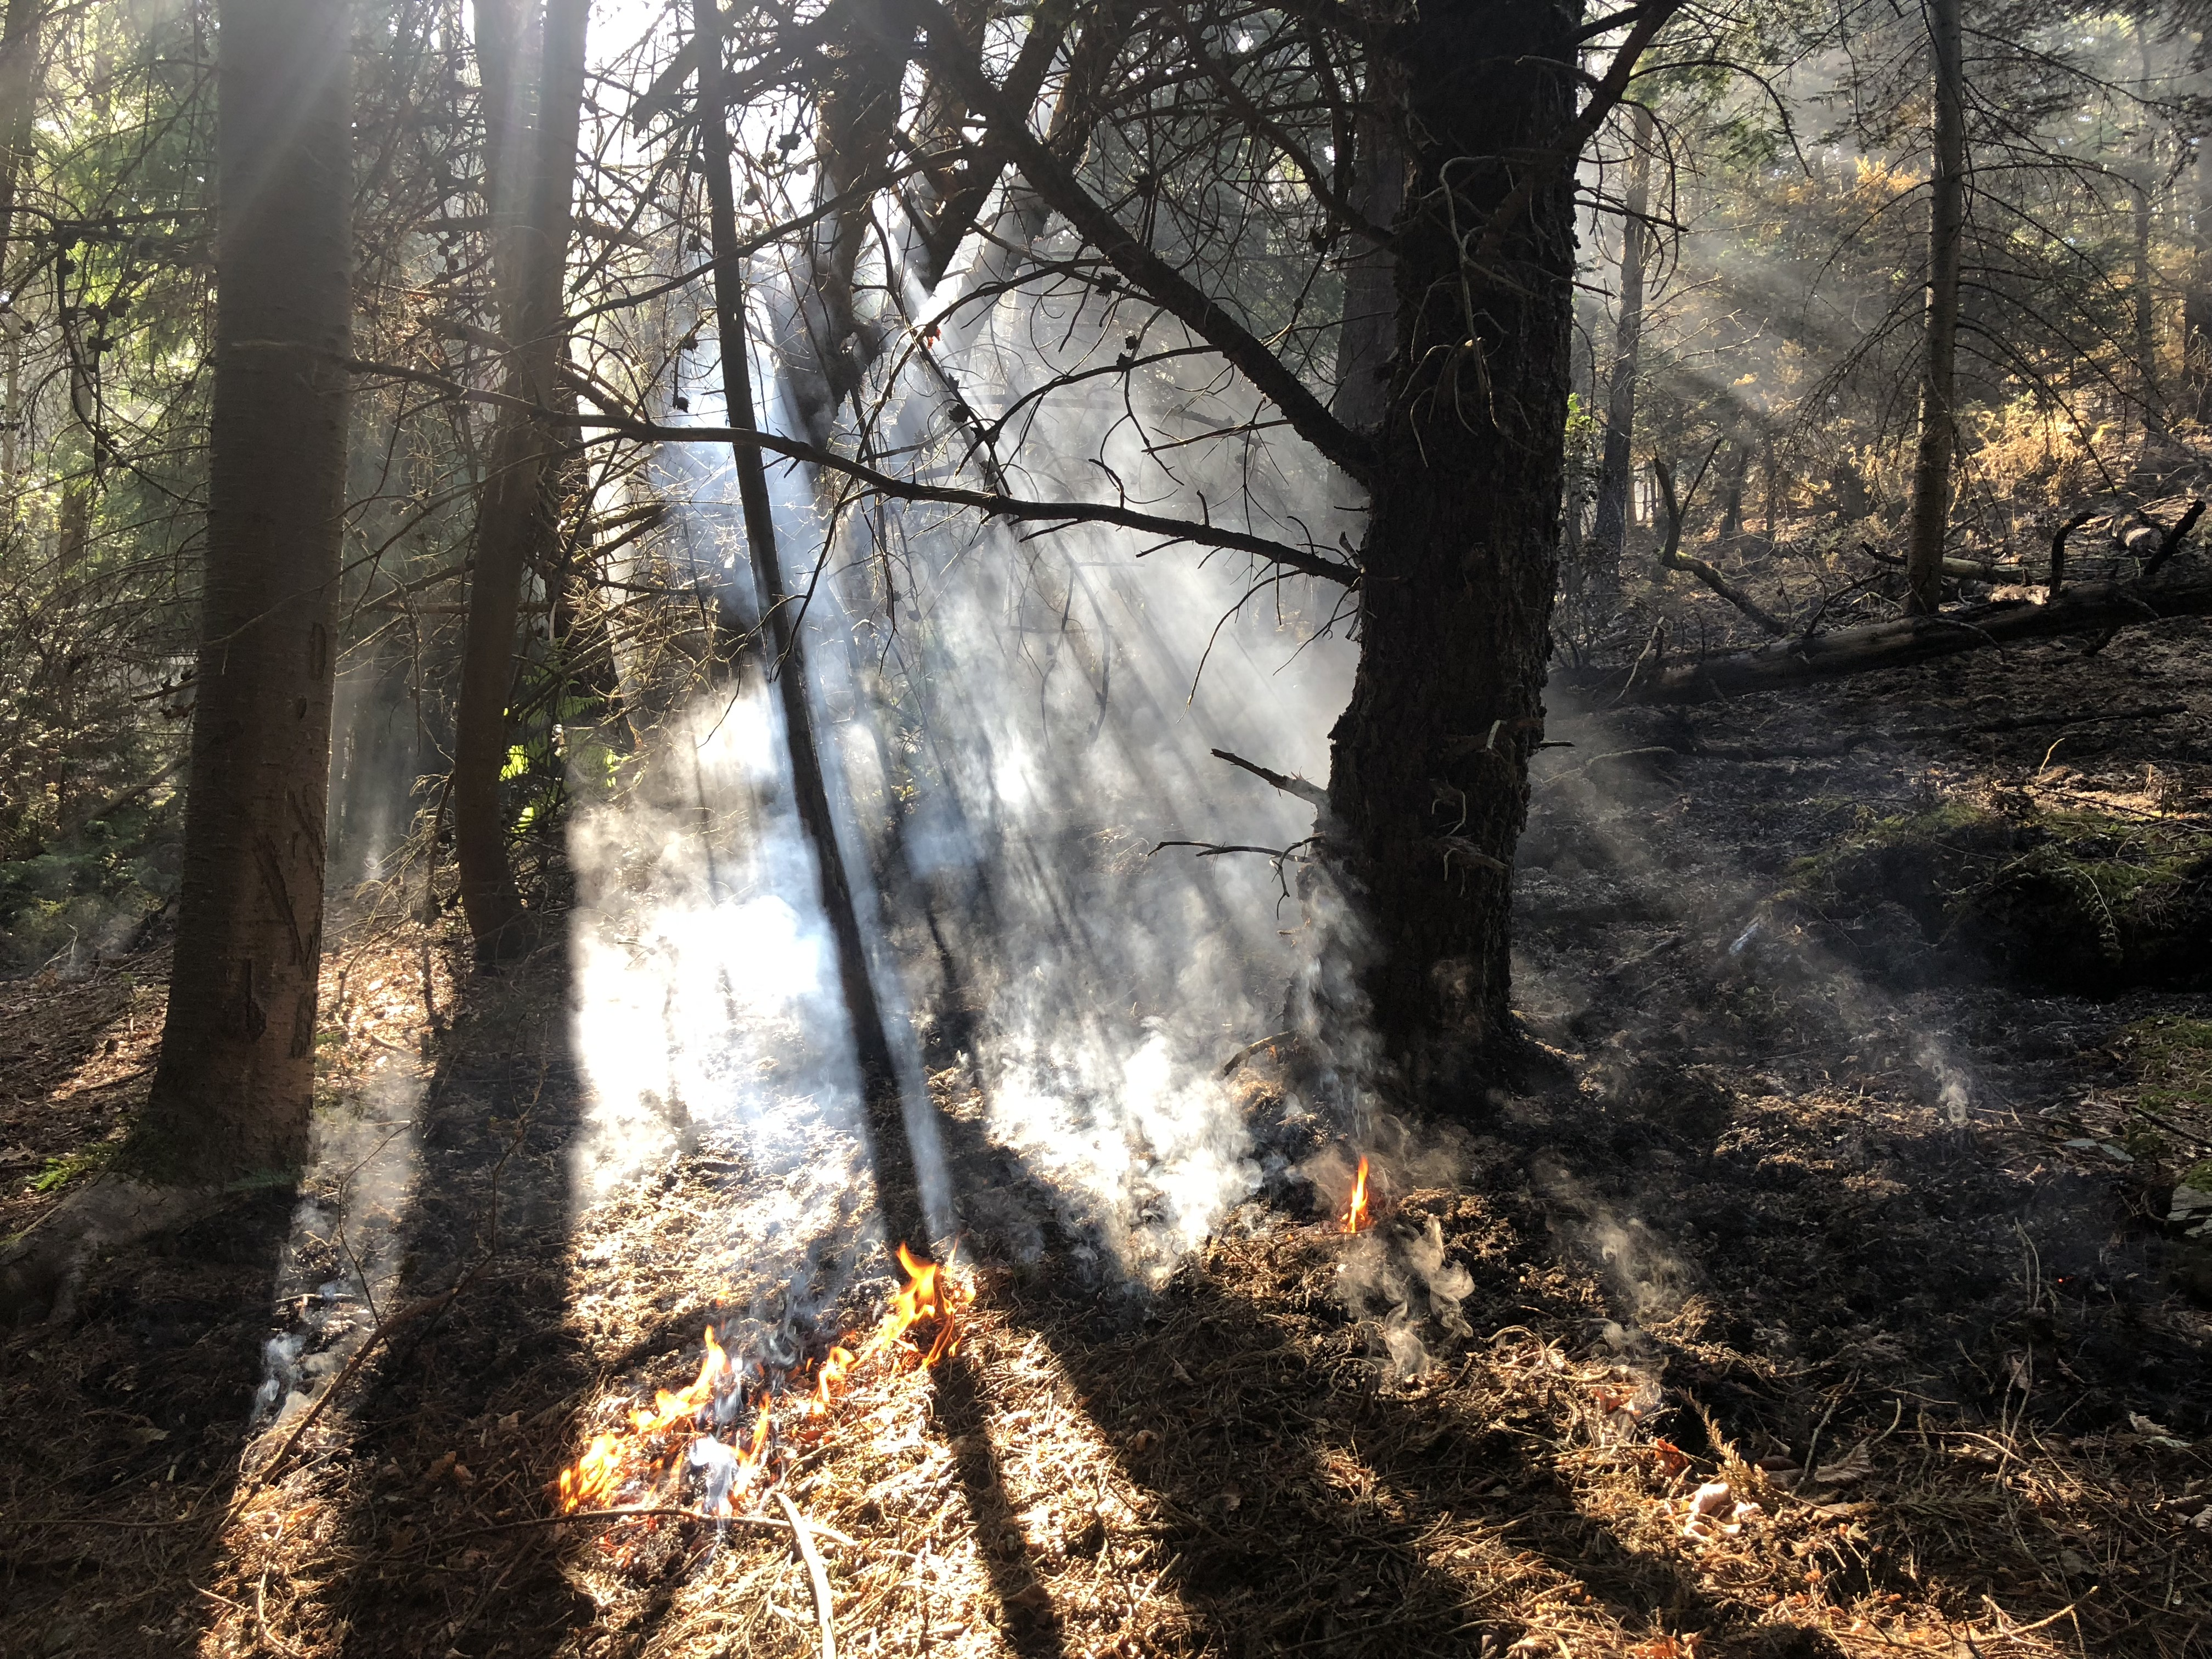 Picture of a fire burning in a forest